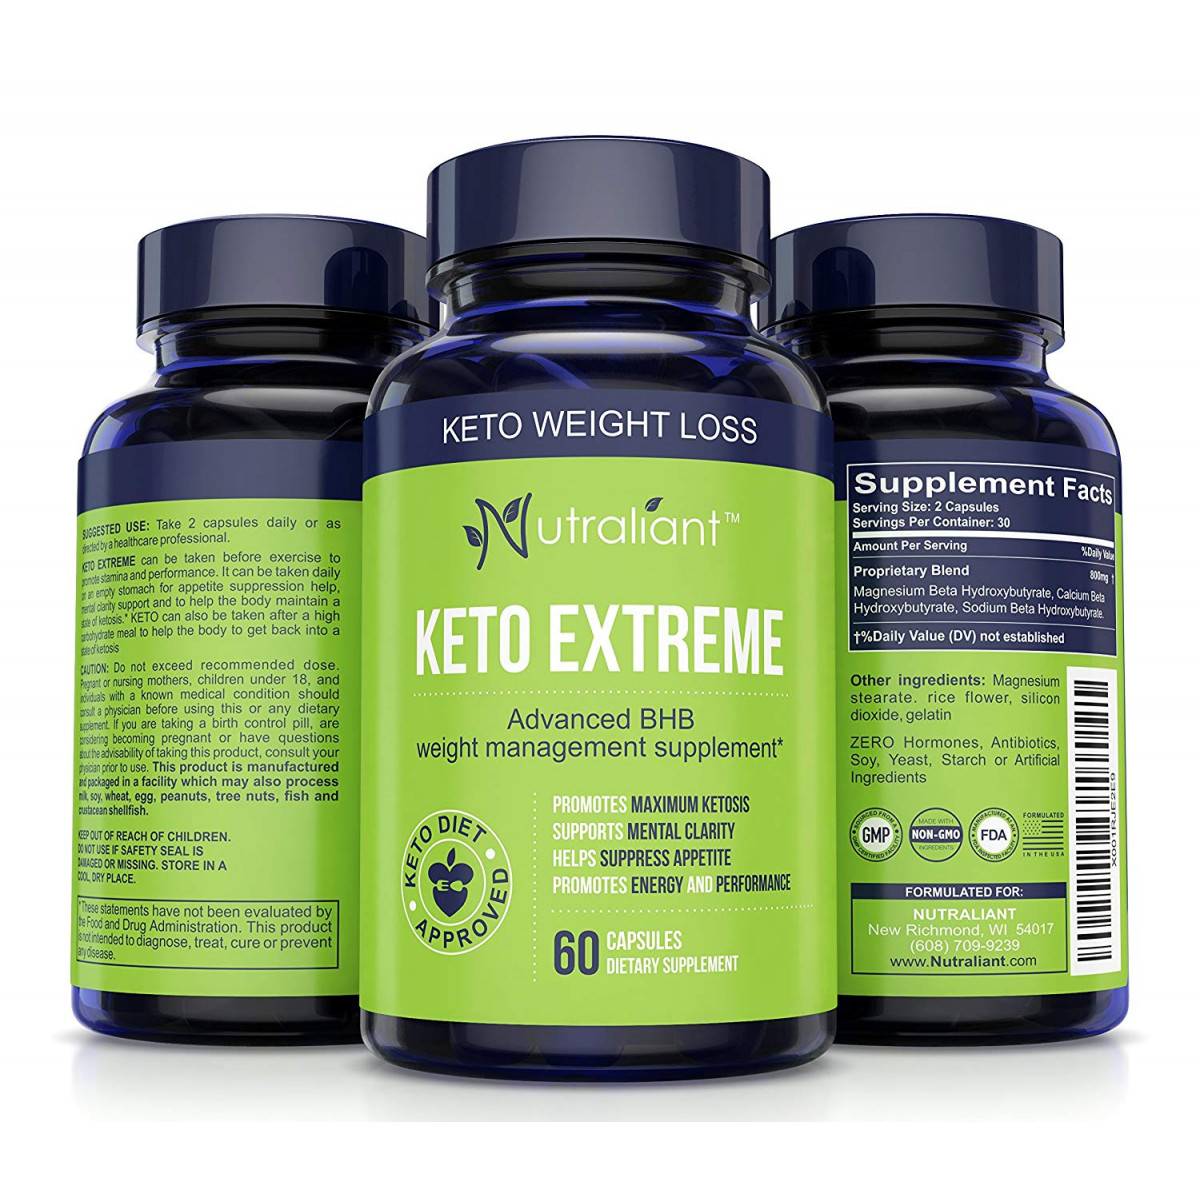 1 Keto Weight Loss Supplement W Bhb Salts Of Magnesium Calcium Sodium Best Ketogenic Fat Burner Diet Pills For Men And Women Boosts Energy And